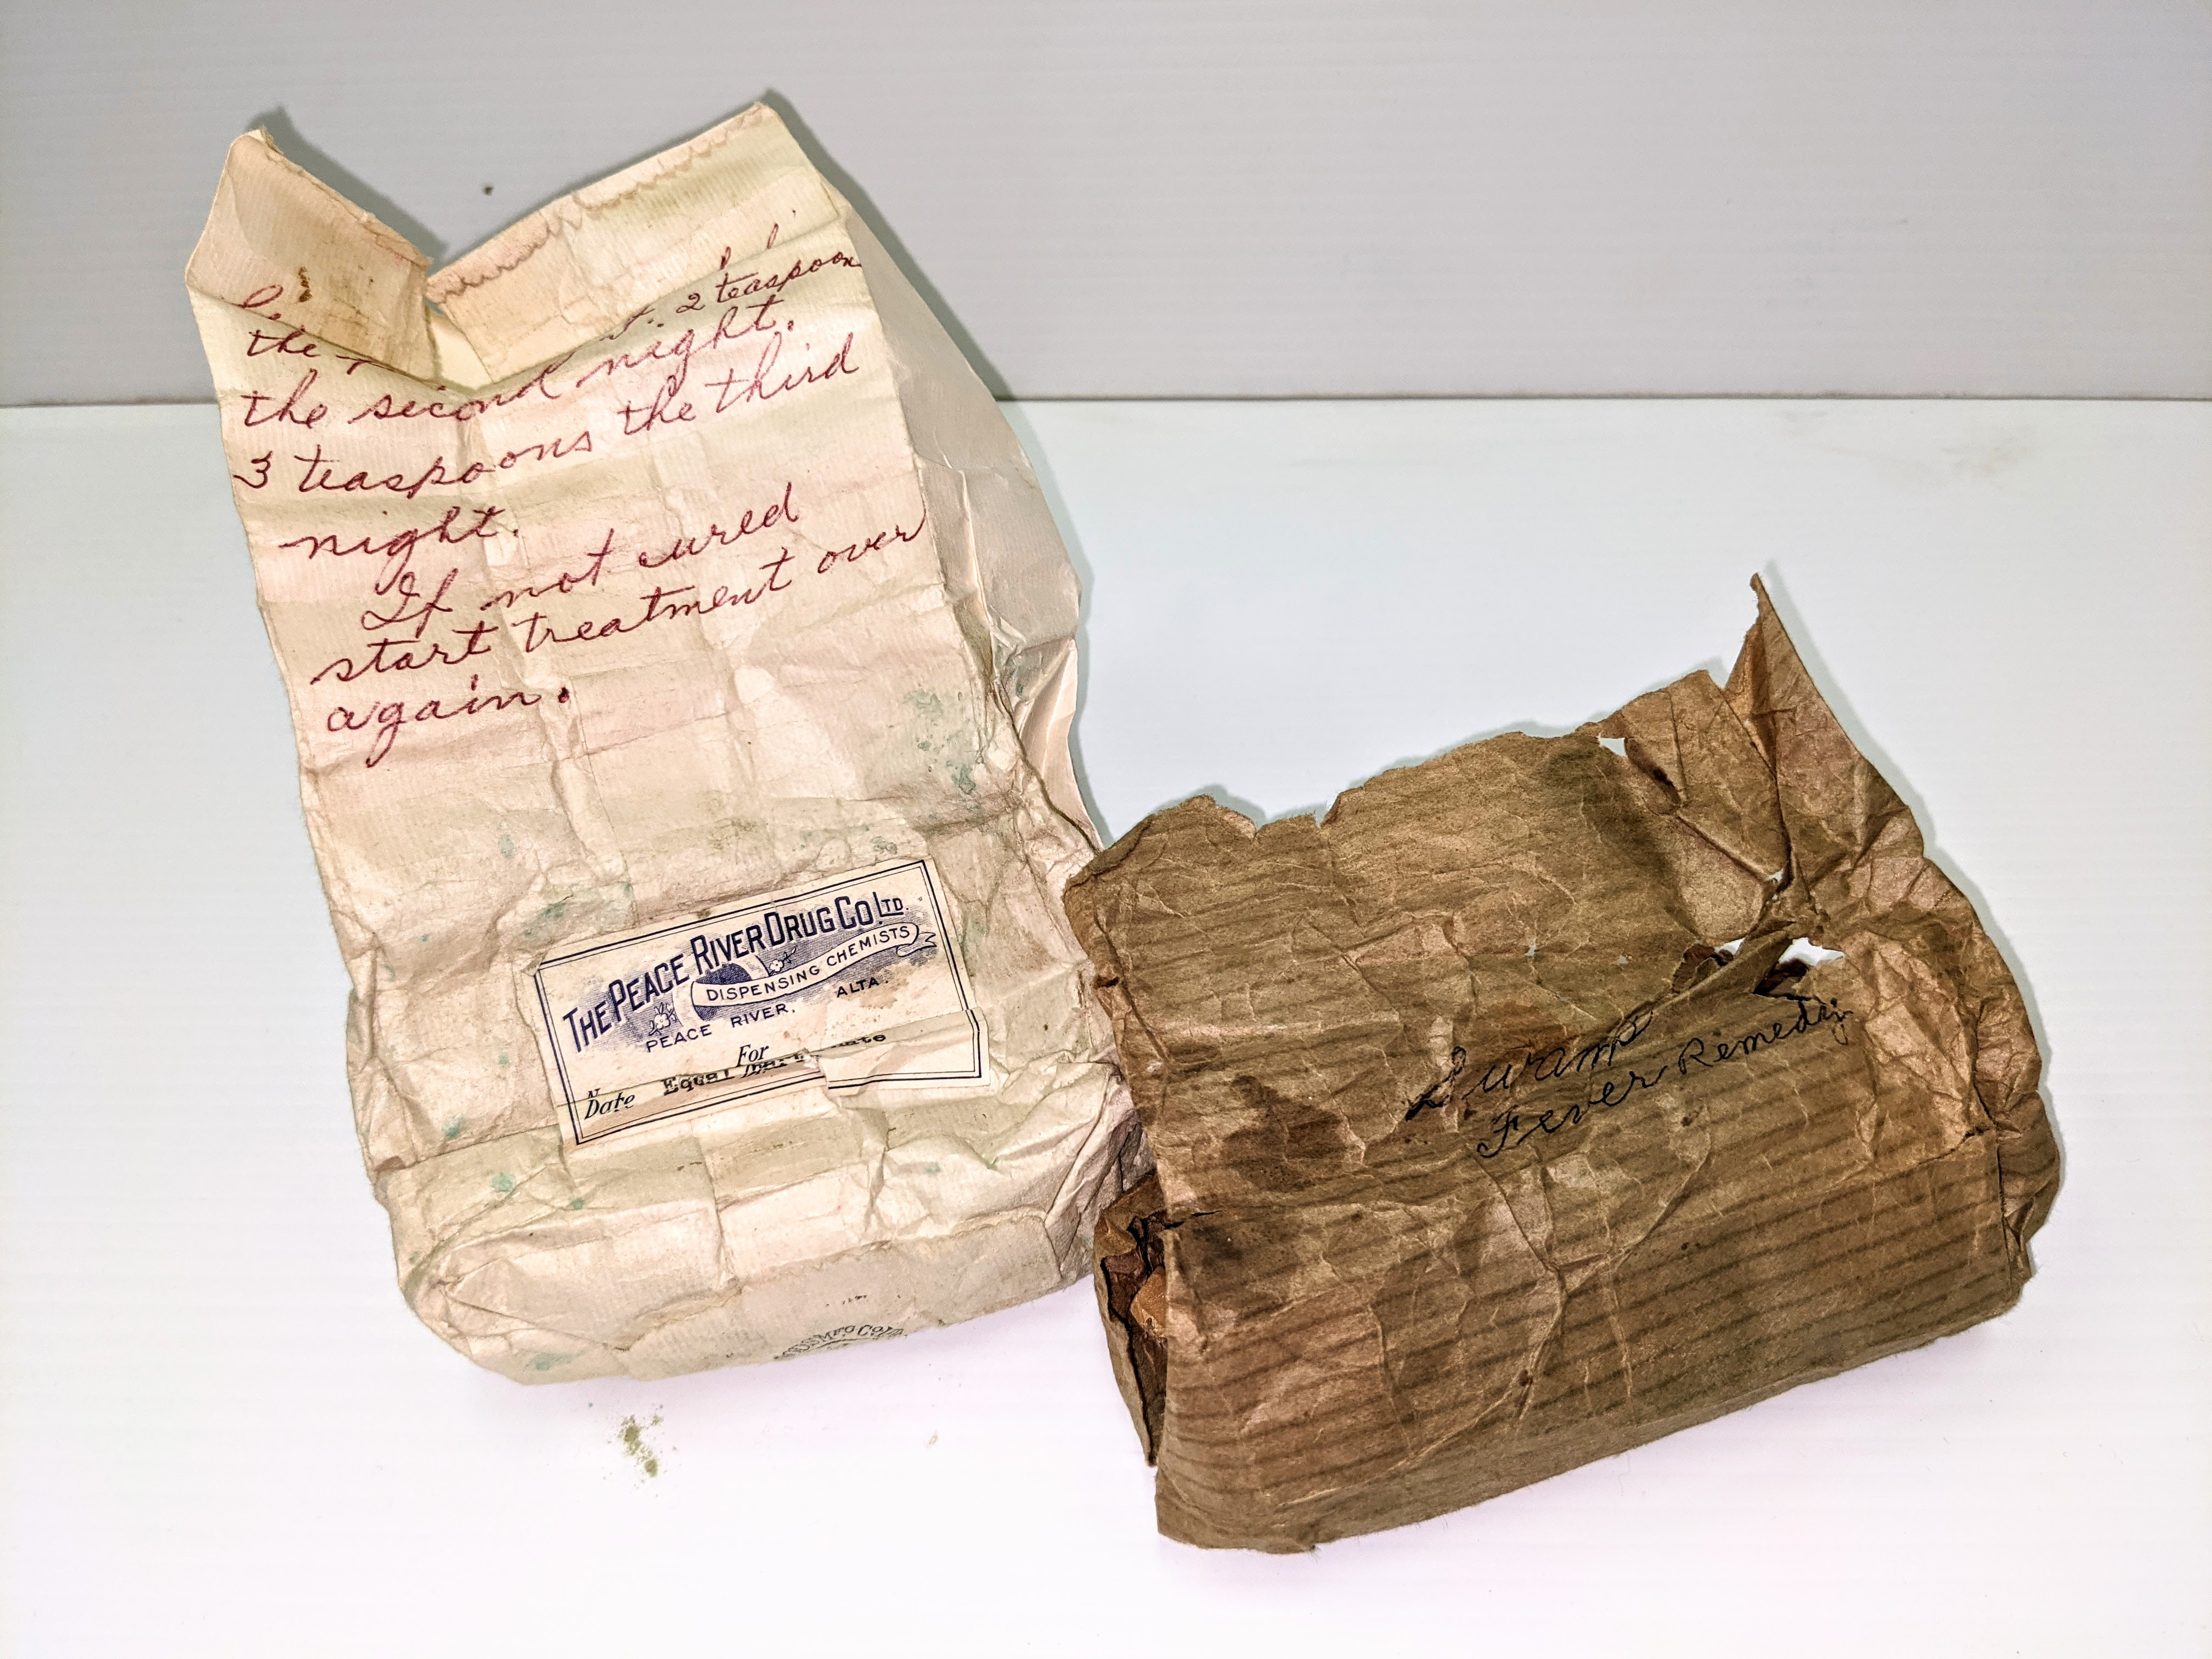 """A product of the Peace River Drug Co. This bag contains a fine green powder labelled as """"Saltpetre, resin, Borax, and copper sulfate"""". Scribbled on the brown packaging its use is labelled as """"For Swamp Fever"""" while the red pen dictates the correct dosage. """"1 teaspoon the first night, 2 teaspoon the second night, 3 teaspoon the third night. If not cured start treatment over again"""". Swamp fever is an ailment in horses that causes lethargy, muscle atrophy and anemia - not ideal for indigenous folks and pioneers who relied on horses for transport and heavy work!  14/06/2021 2000.03.54 / Cambell, Jean"""